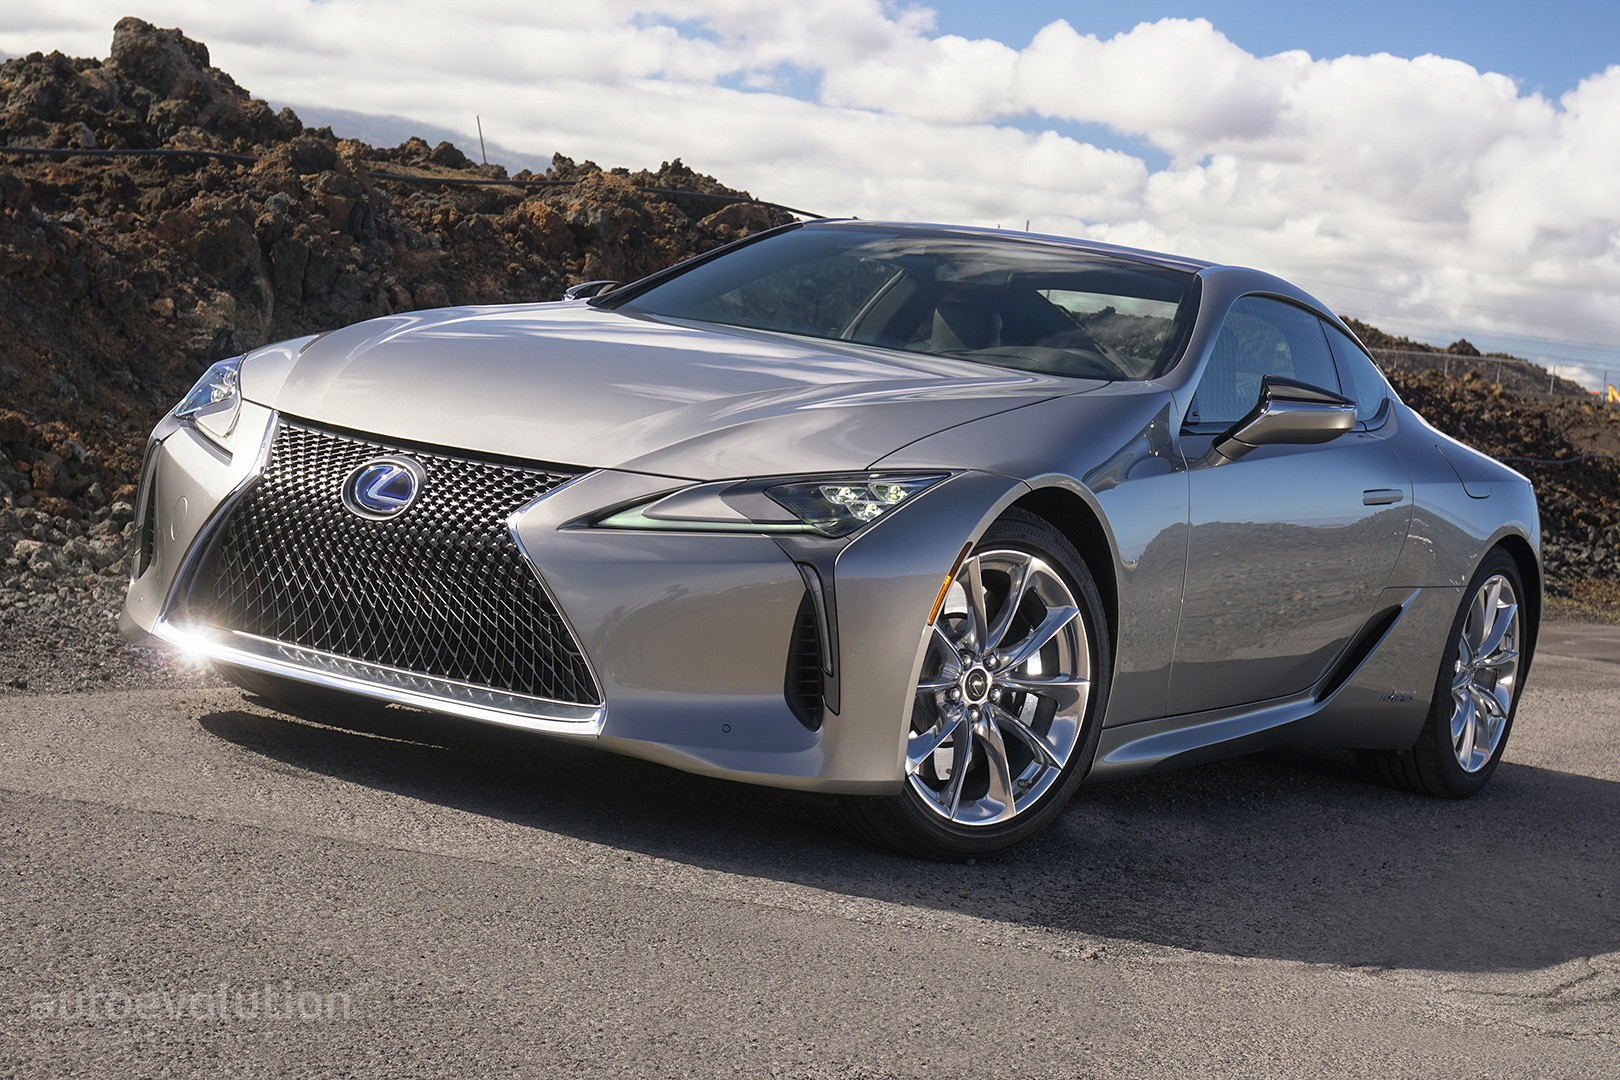 Lexus LC 500 Drift Car Rendering Follows The Story Of The